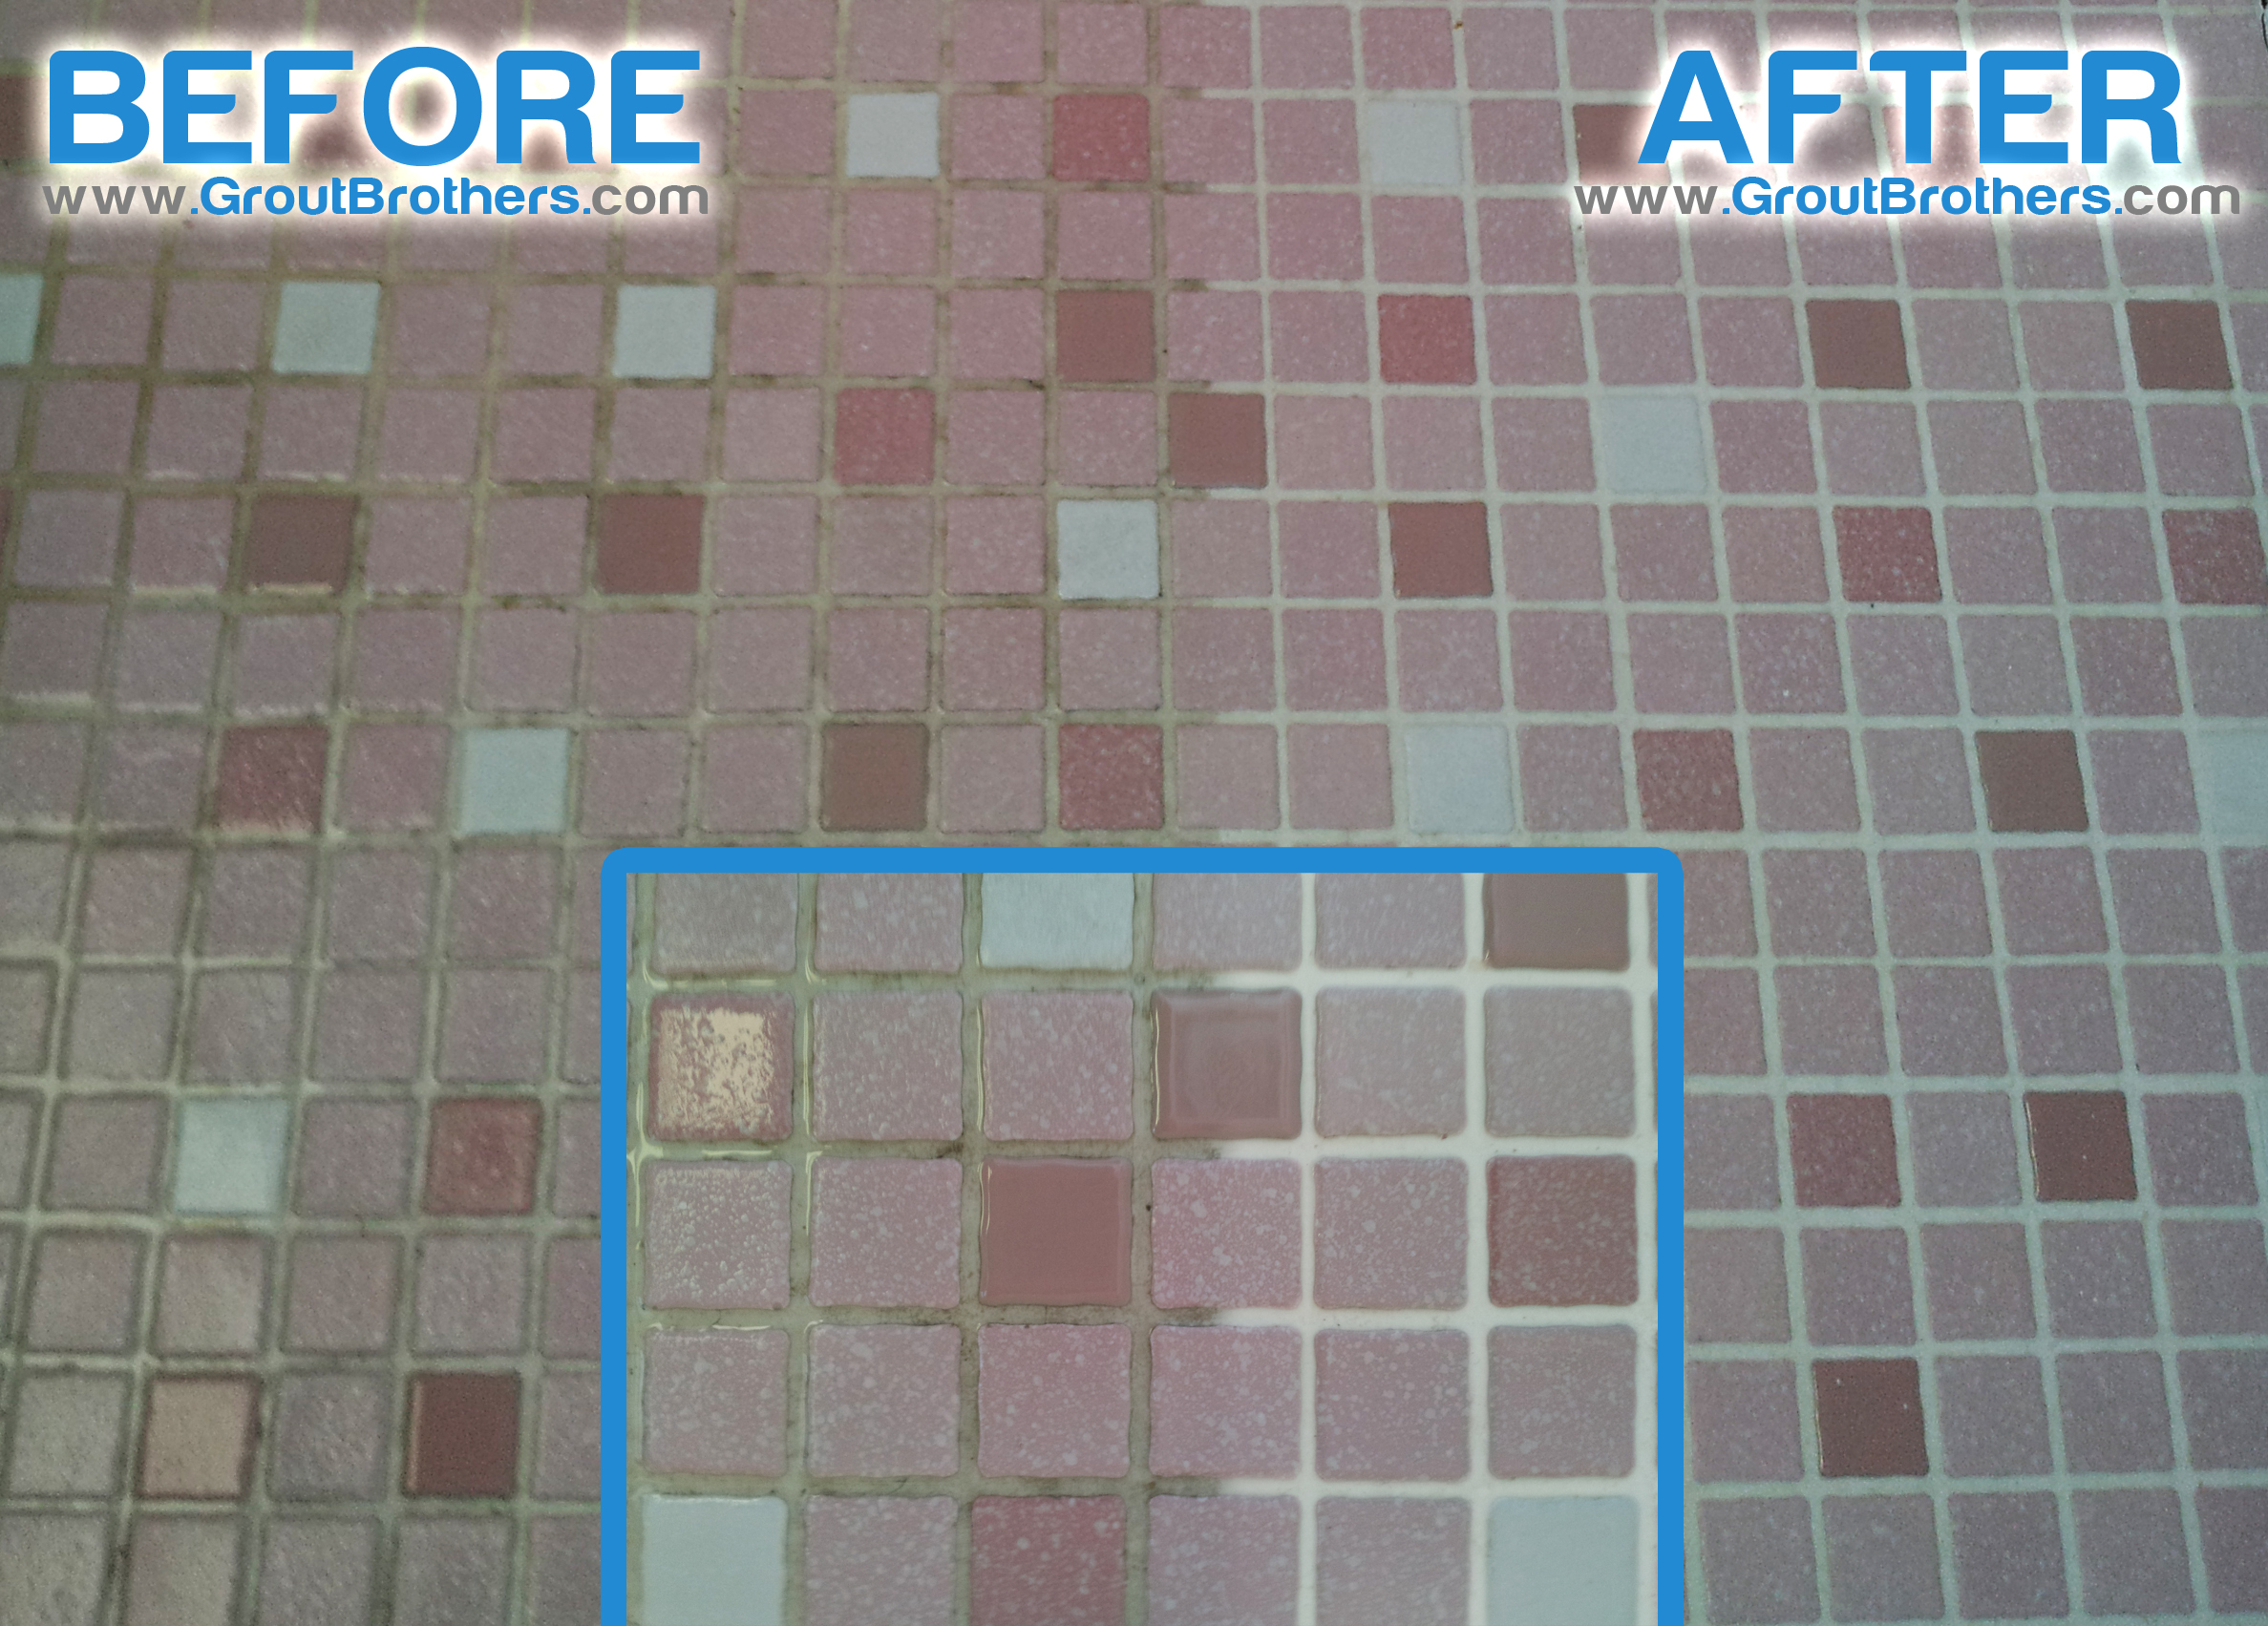 Professional tile and grout cleaning englewood fl grout brothers tile and grout cleaning dailygadgetfo Image collections